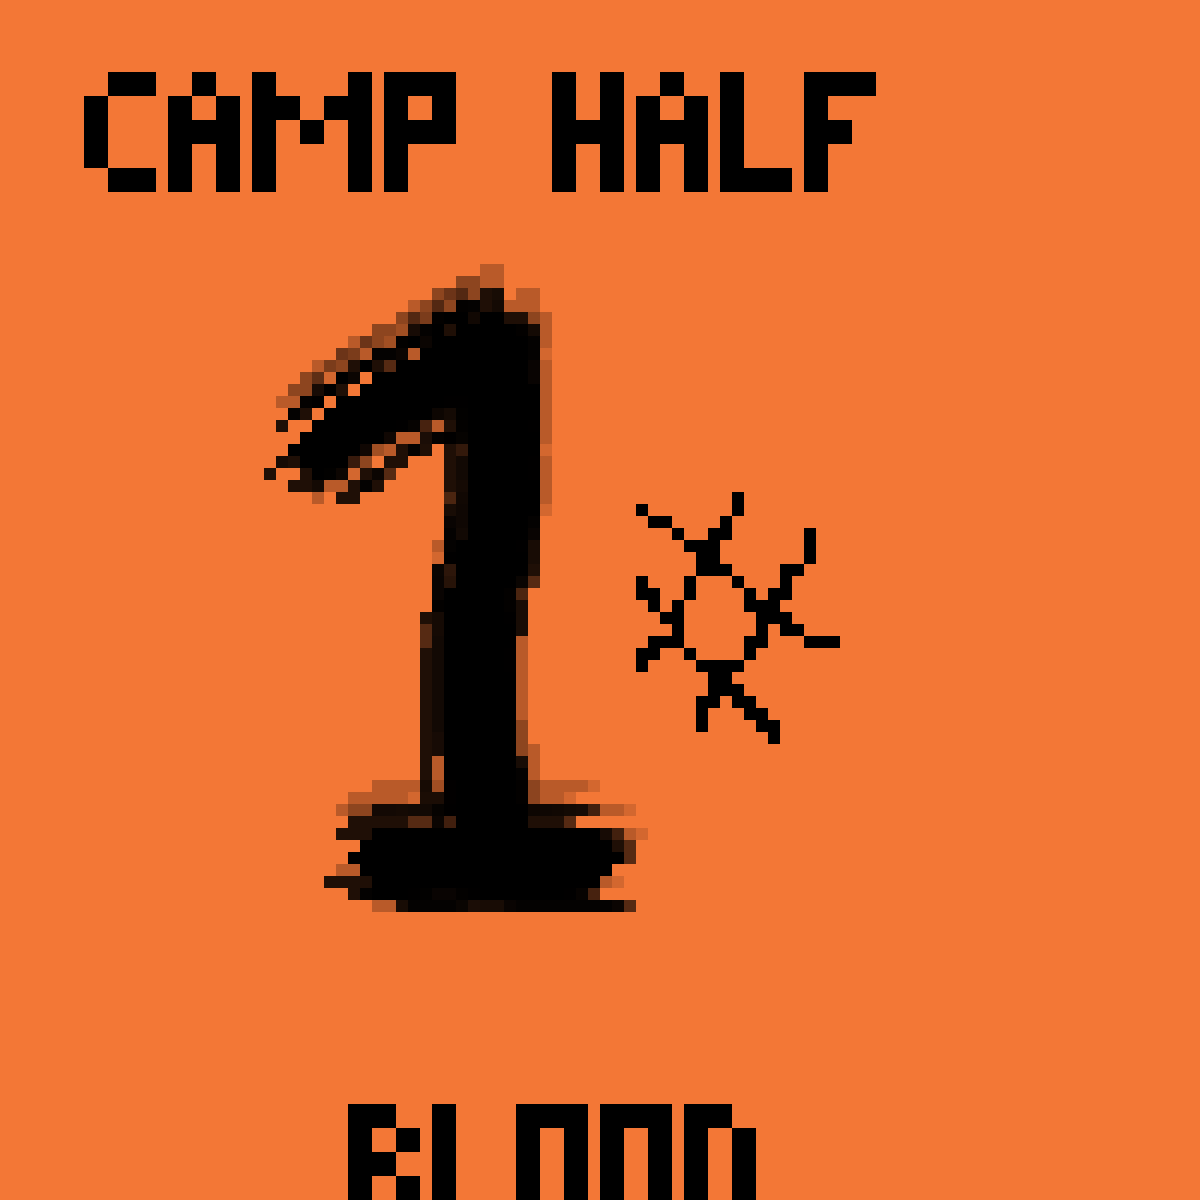 Camp Half Blood is #1 by itsyoboy